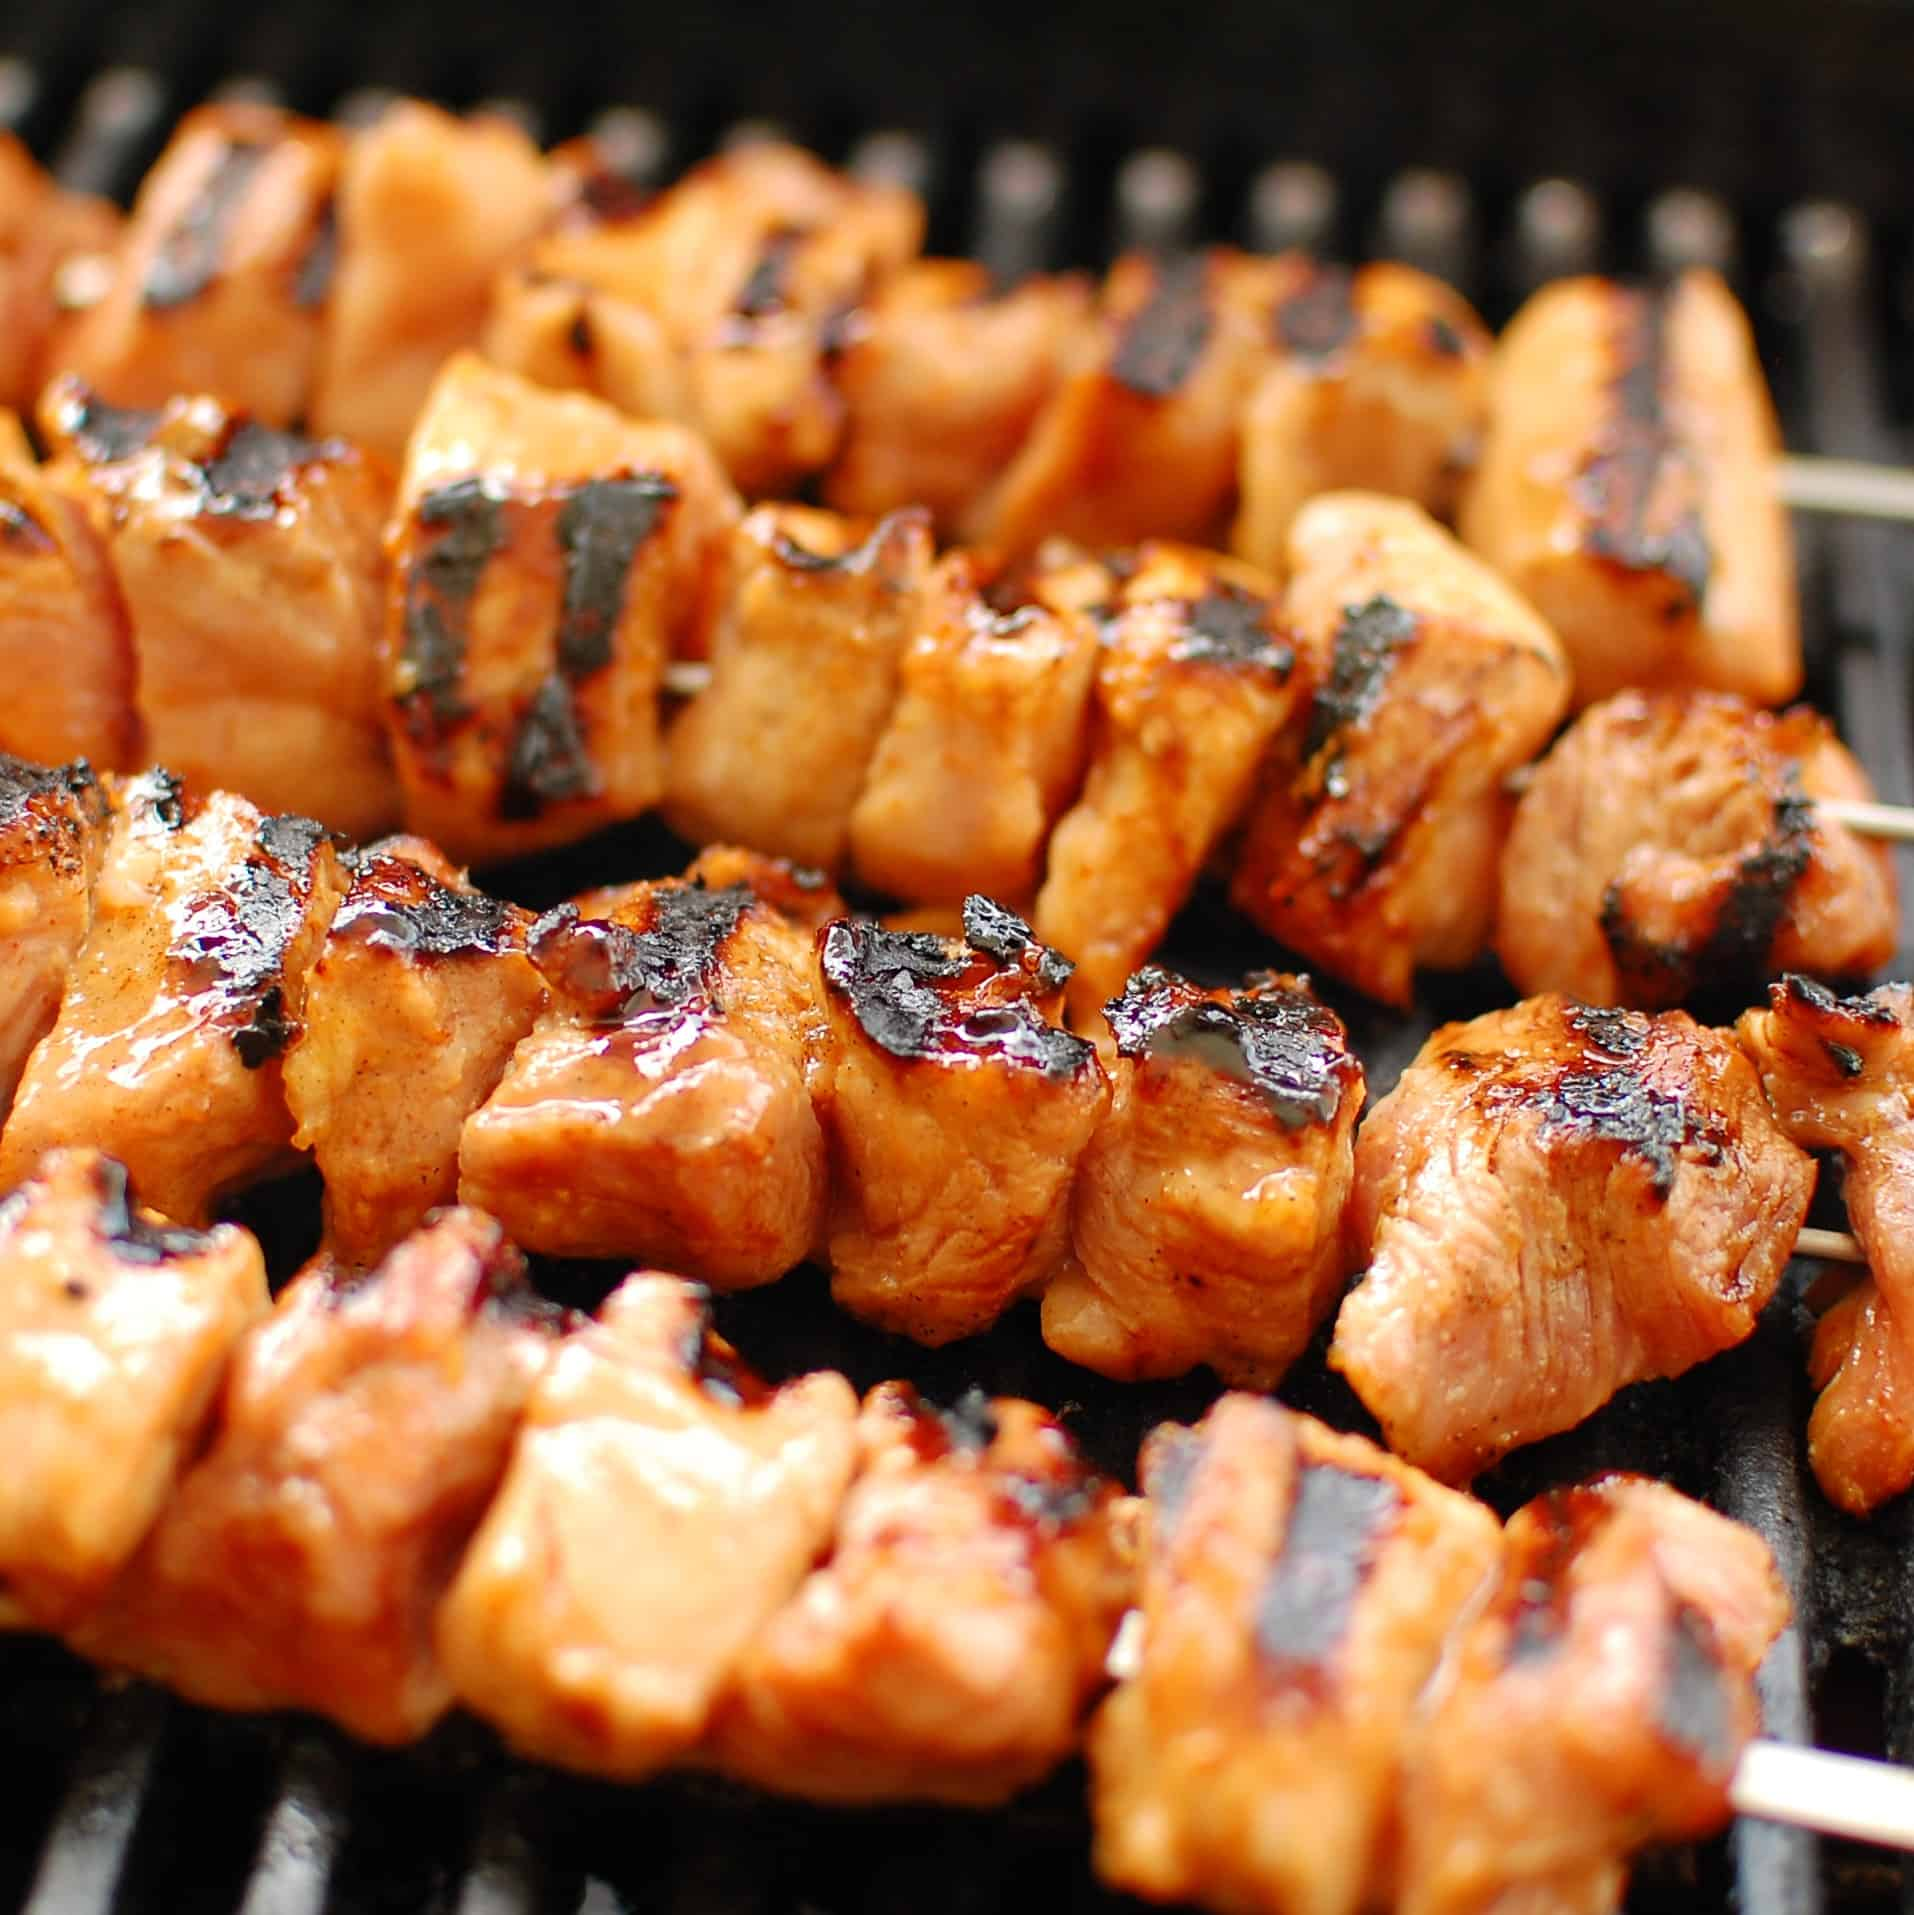 Pork on skewers on a grill.